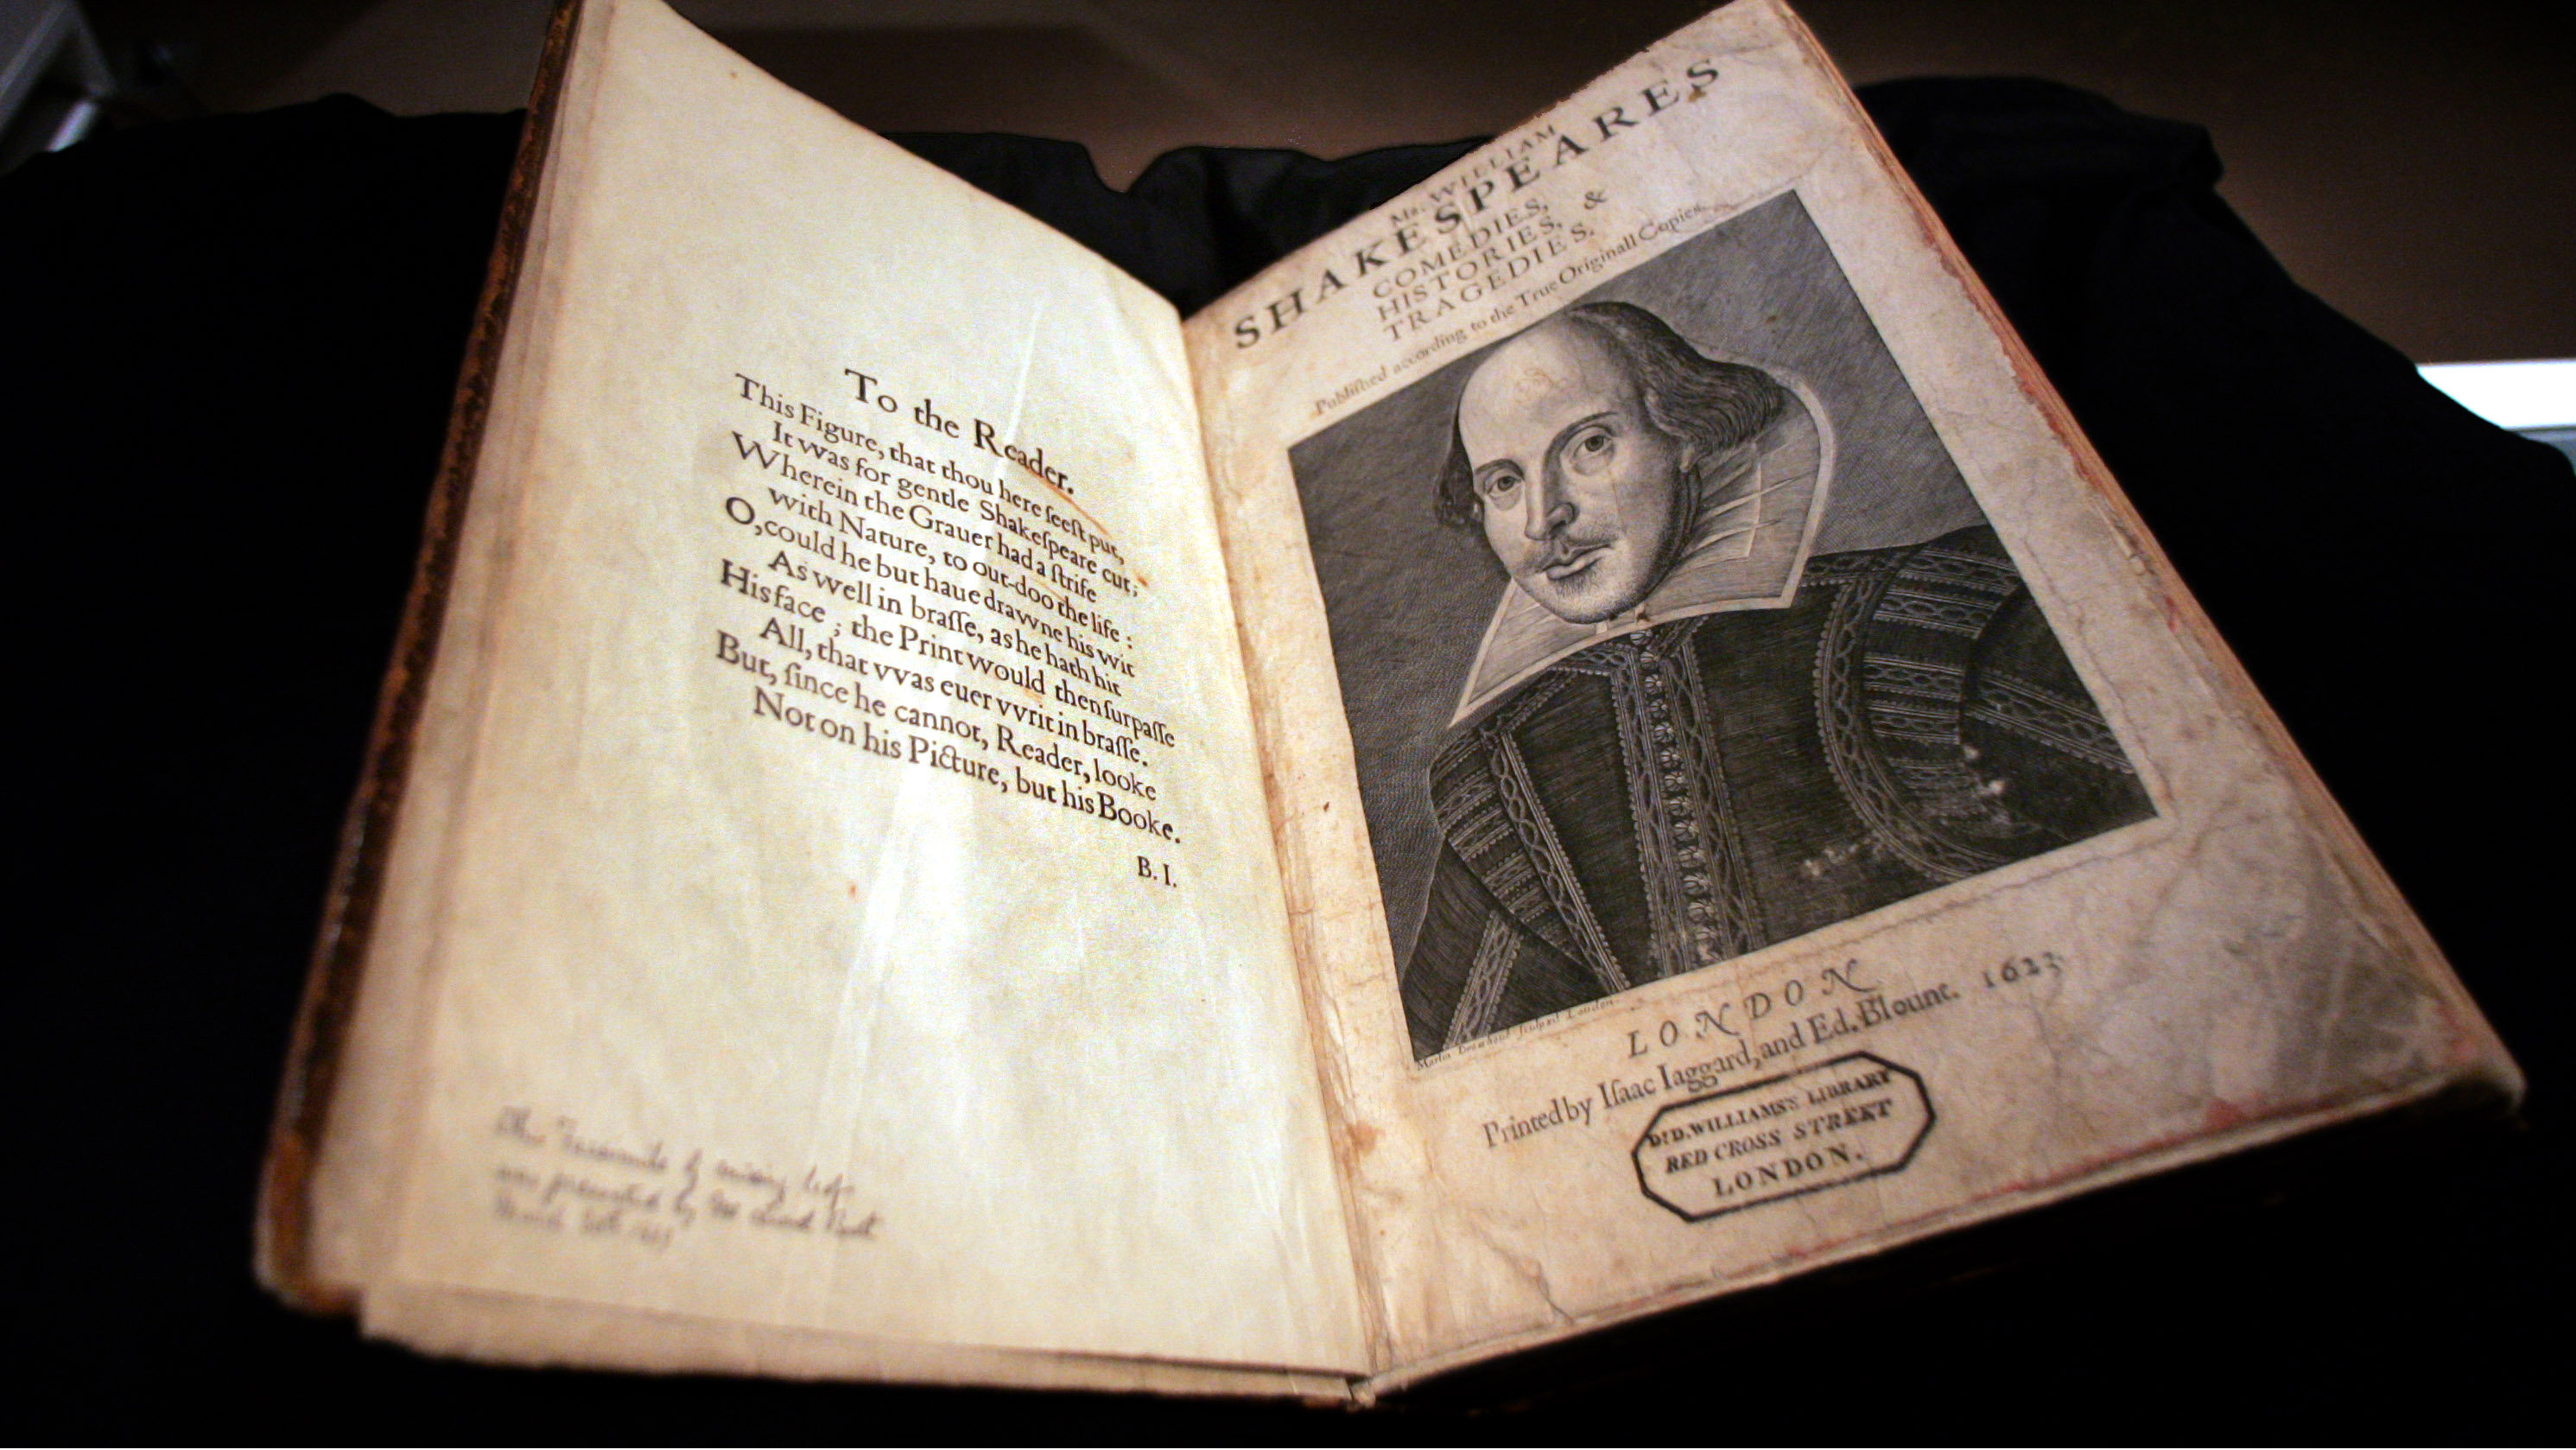 A 1623 First Folio of Shakespeare's plays is on display at Sotheby's in New York, Wednesday, April 19, 2006. Published seven years after Shakespeare's death this volume contains a total of 36 plays, 18 of which had never been previously printed. The book will be offered for sale in Sotheby's sale of English Literature and History in London on Thursday, July 13, 2006.